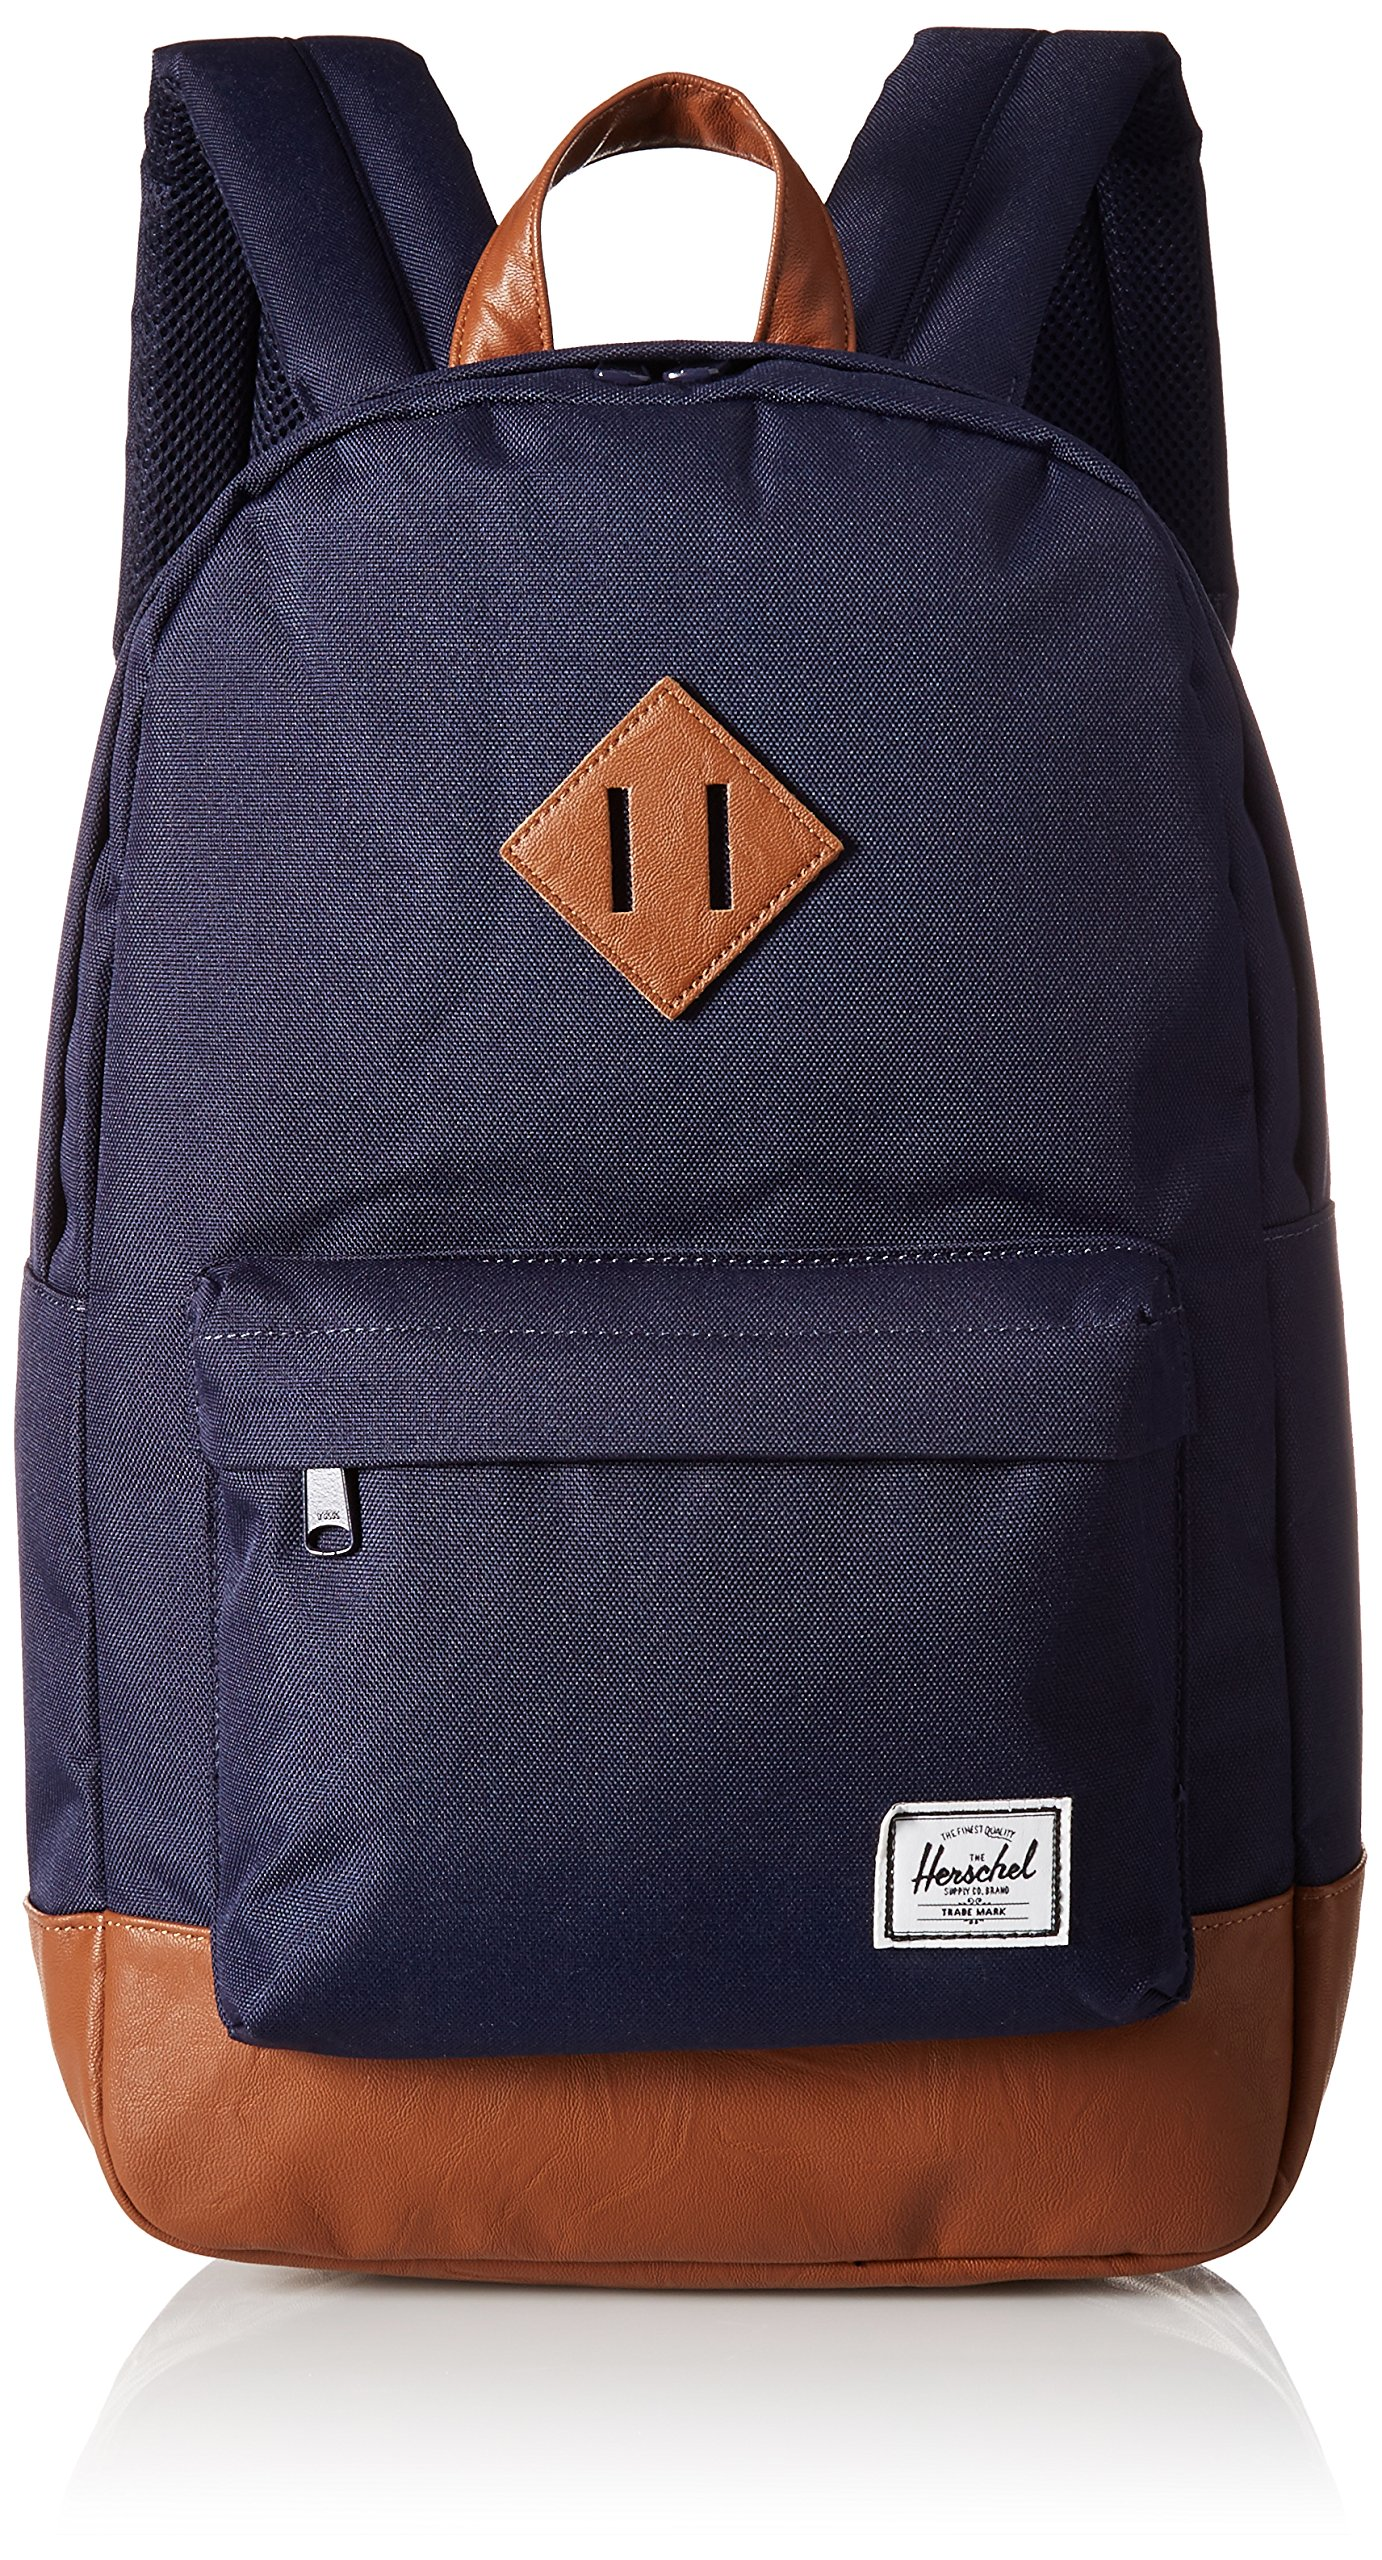 Herschel Supply Co. Heritage Mid-Volume Backpack, Peacoat/Tan Synthetic Leather, One Size